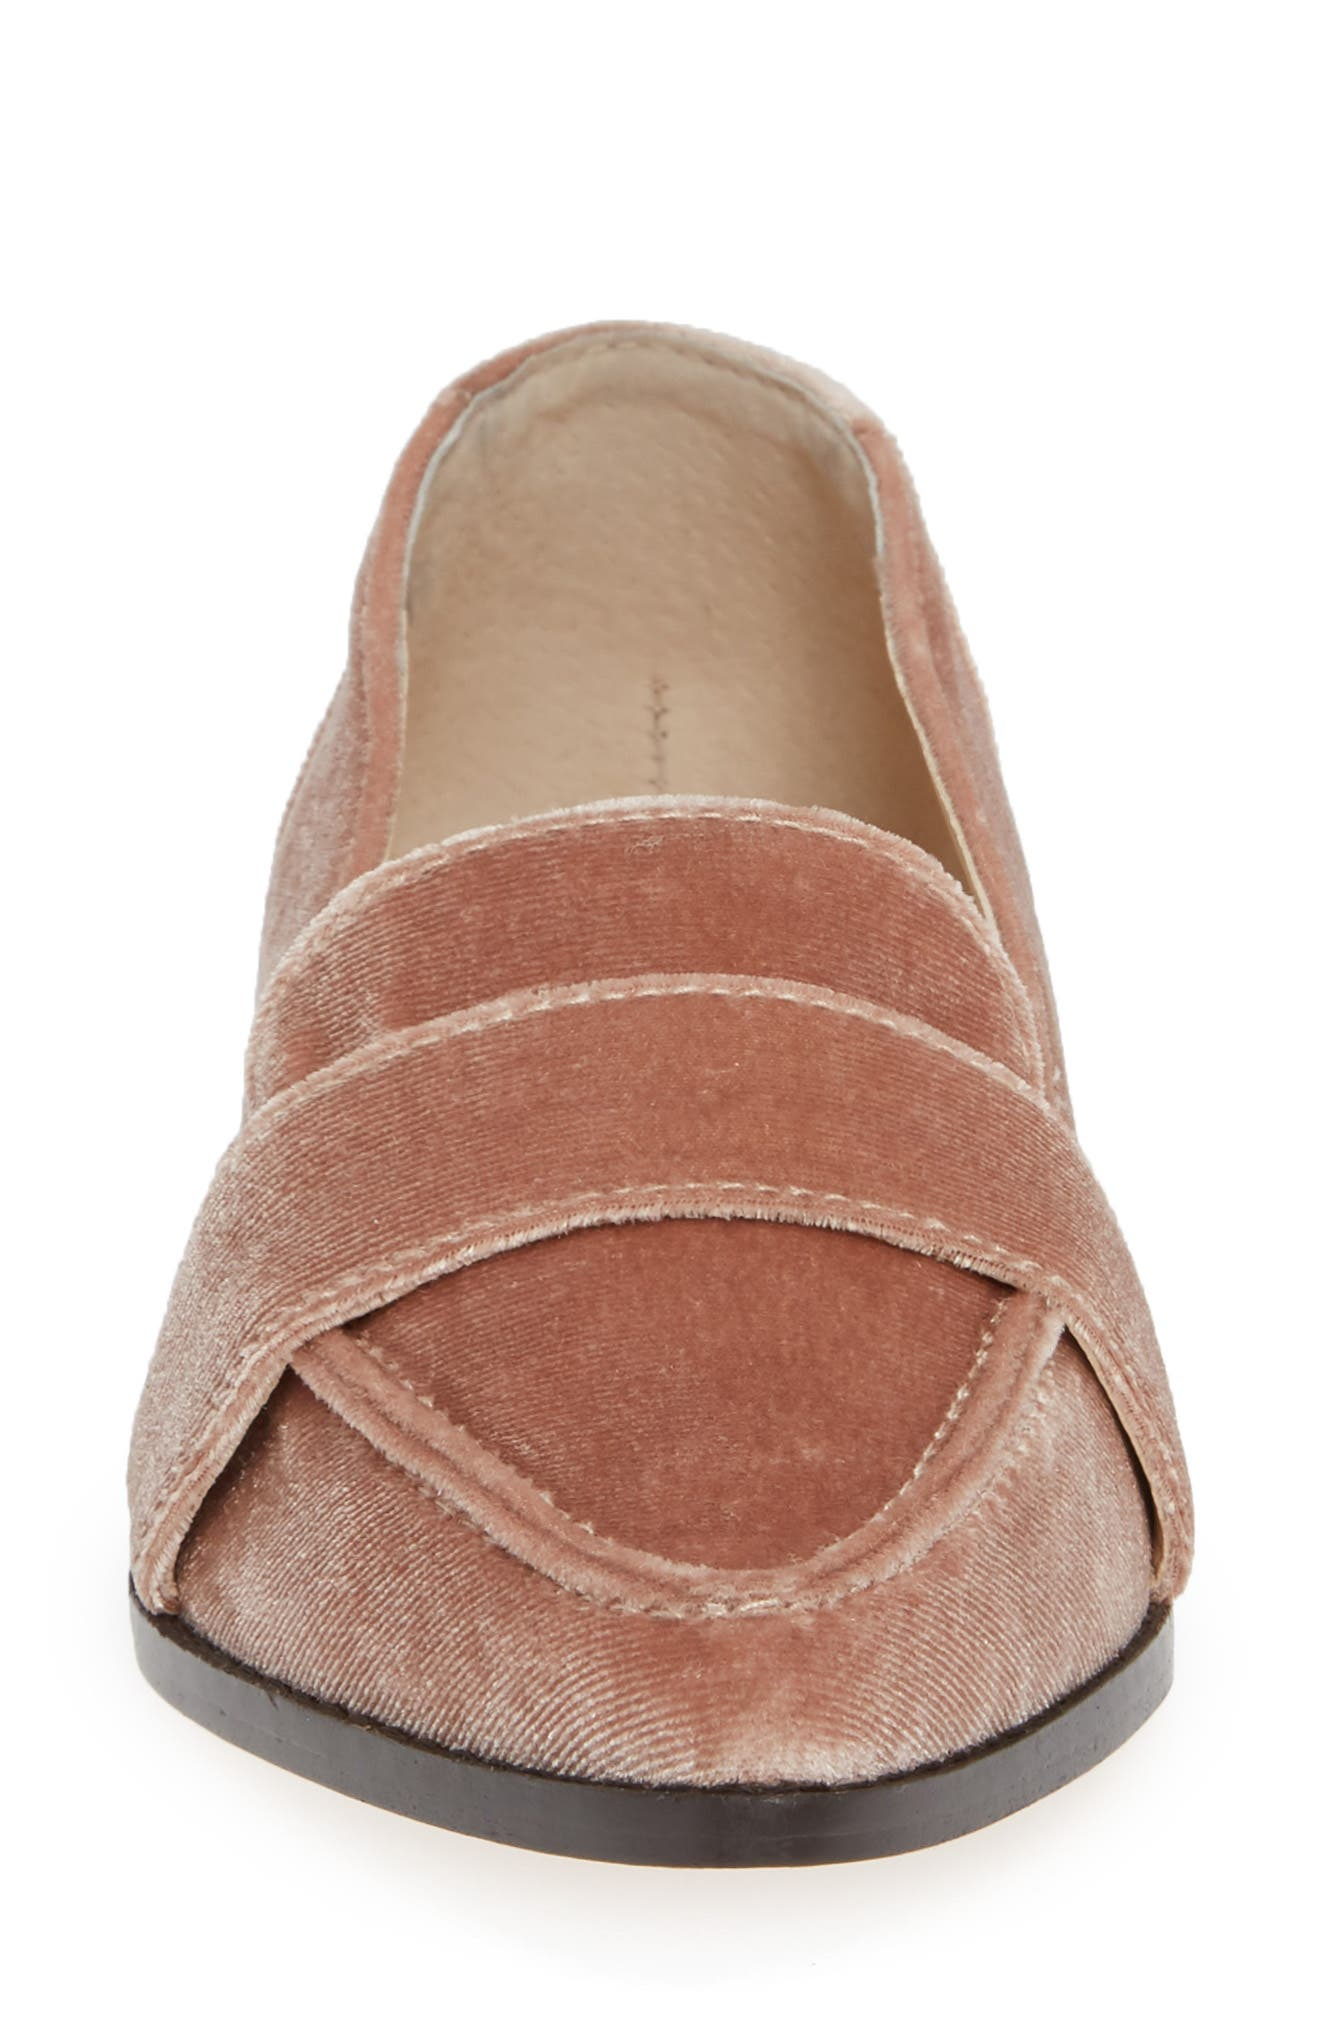 SOLE SOCIETY, Edie Pointy Toe Loafer, Alternate thumbnail 4, color, 682